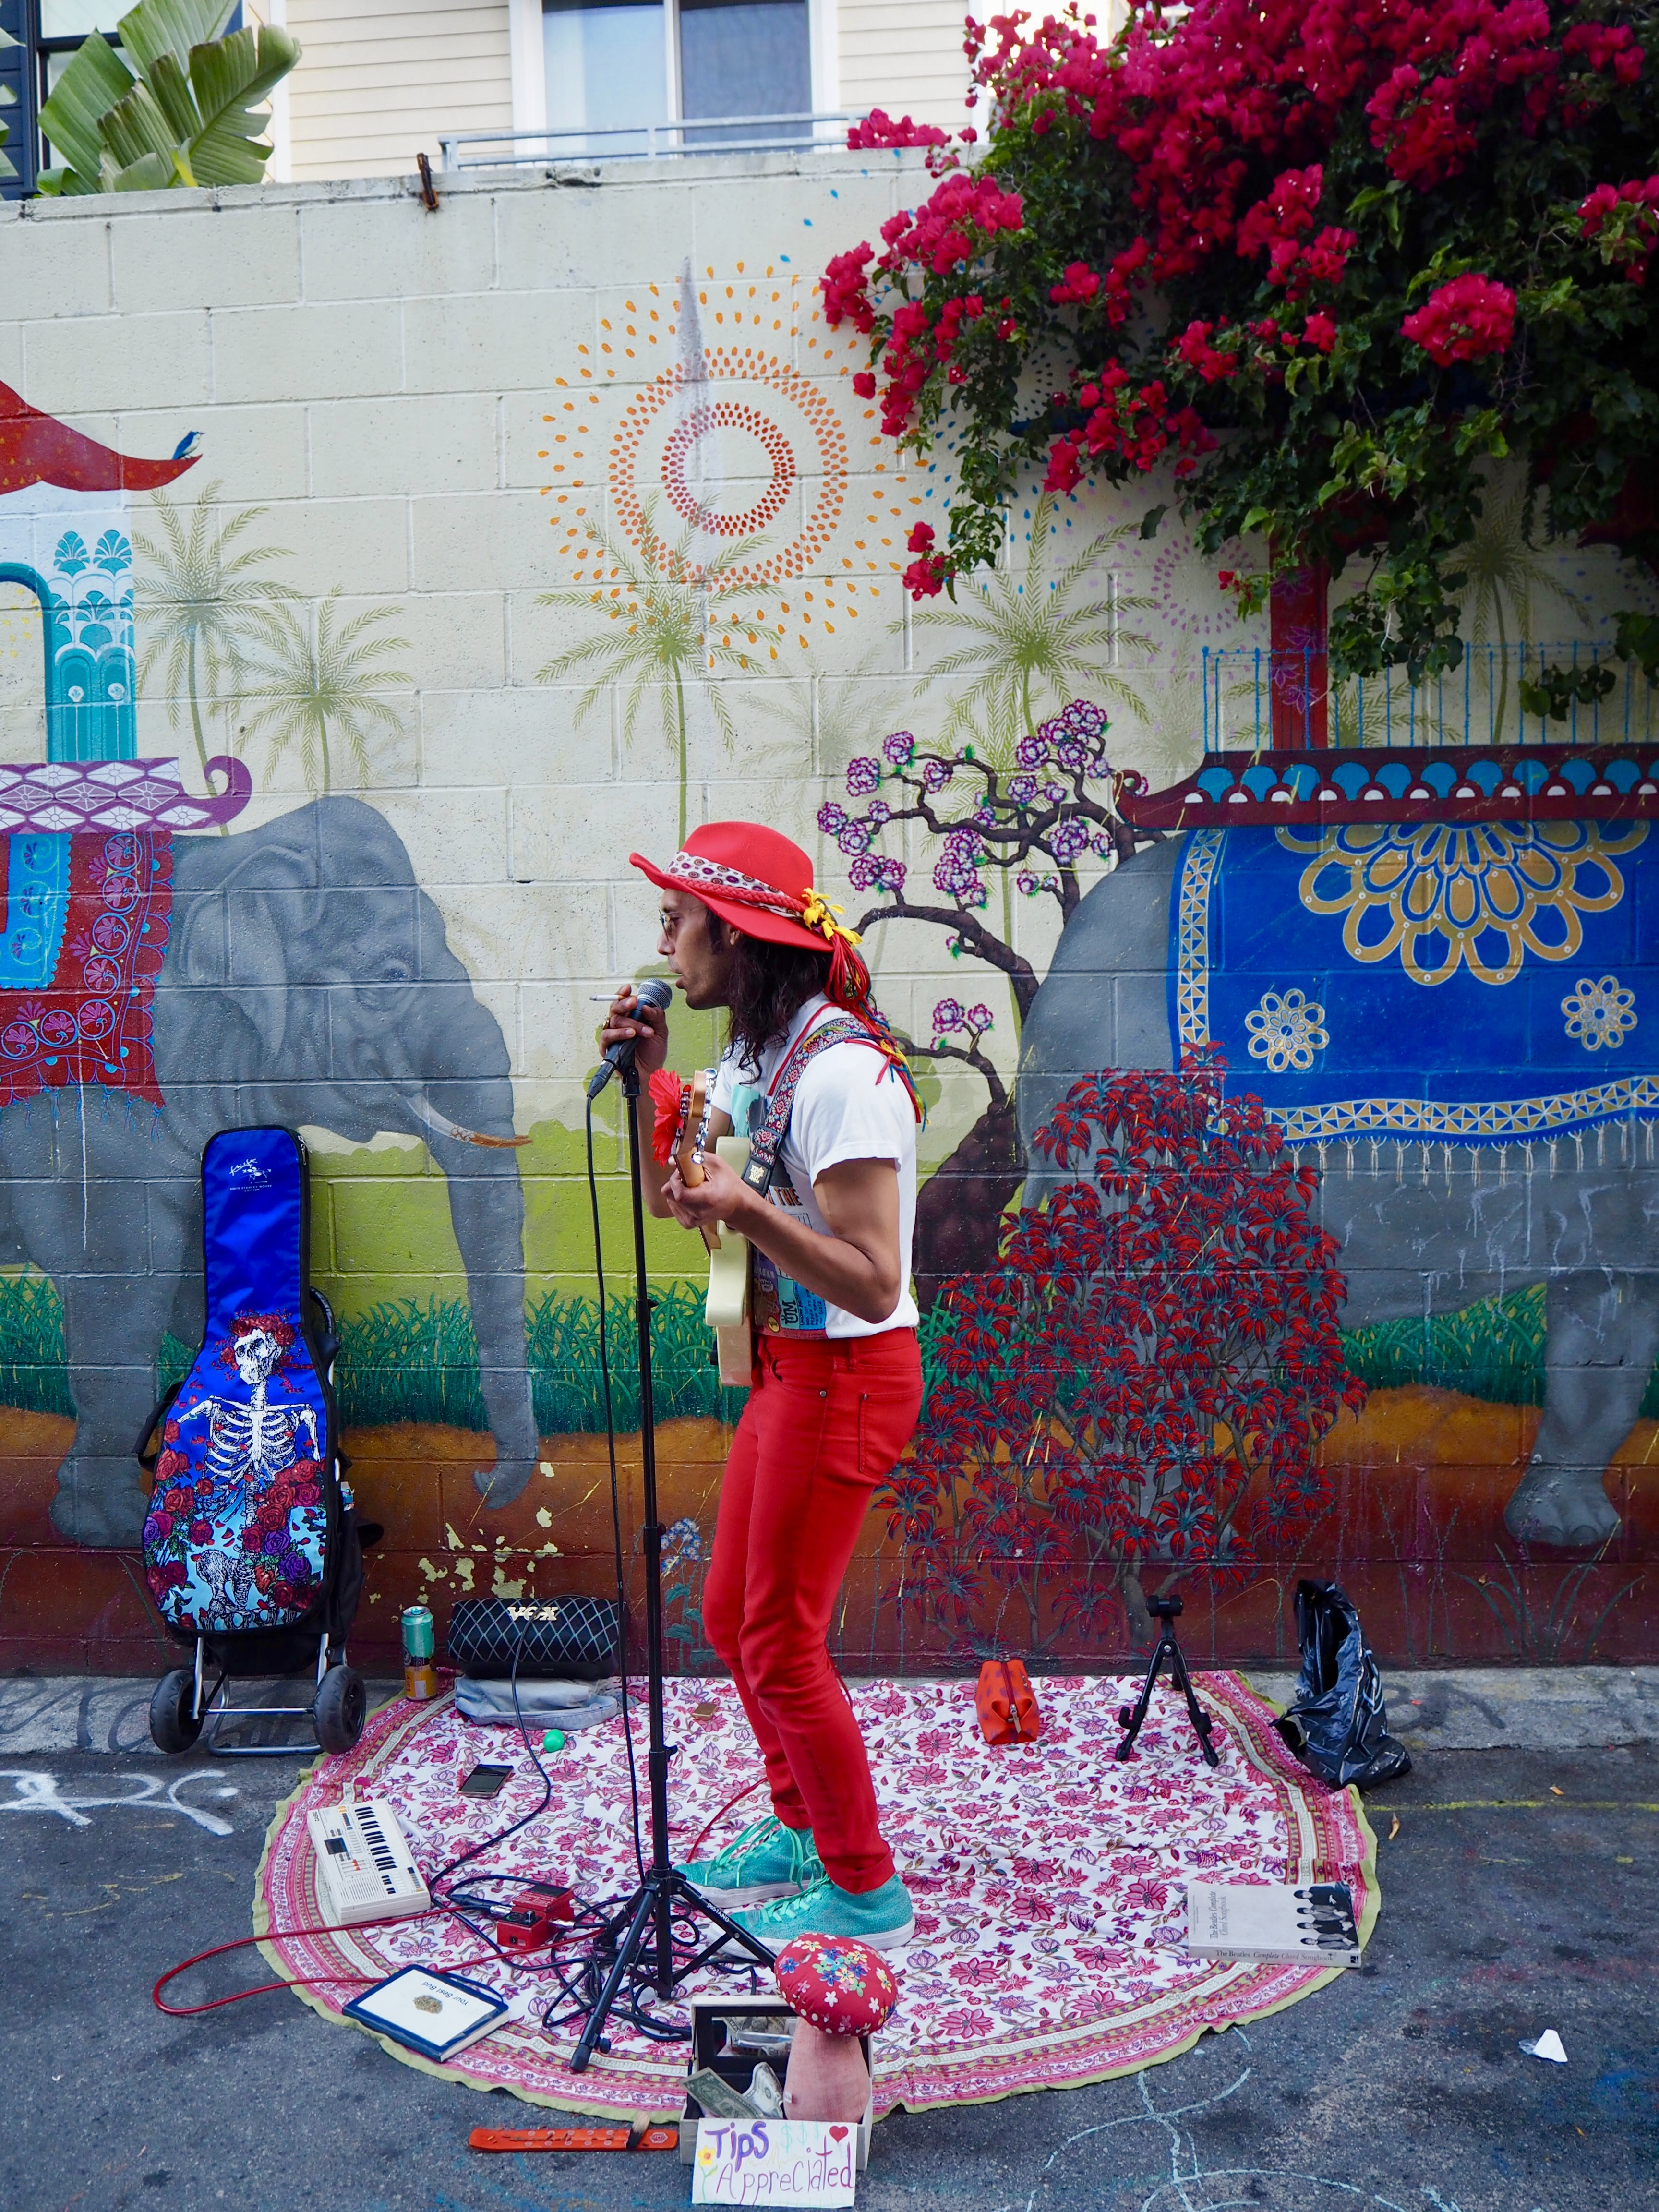 Artists playing at Clarion Alley